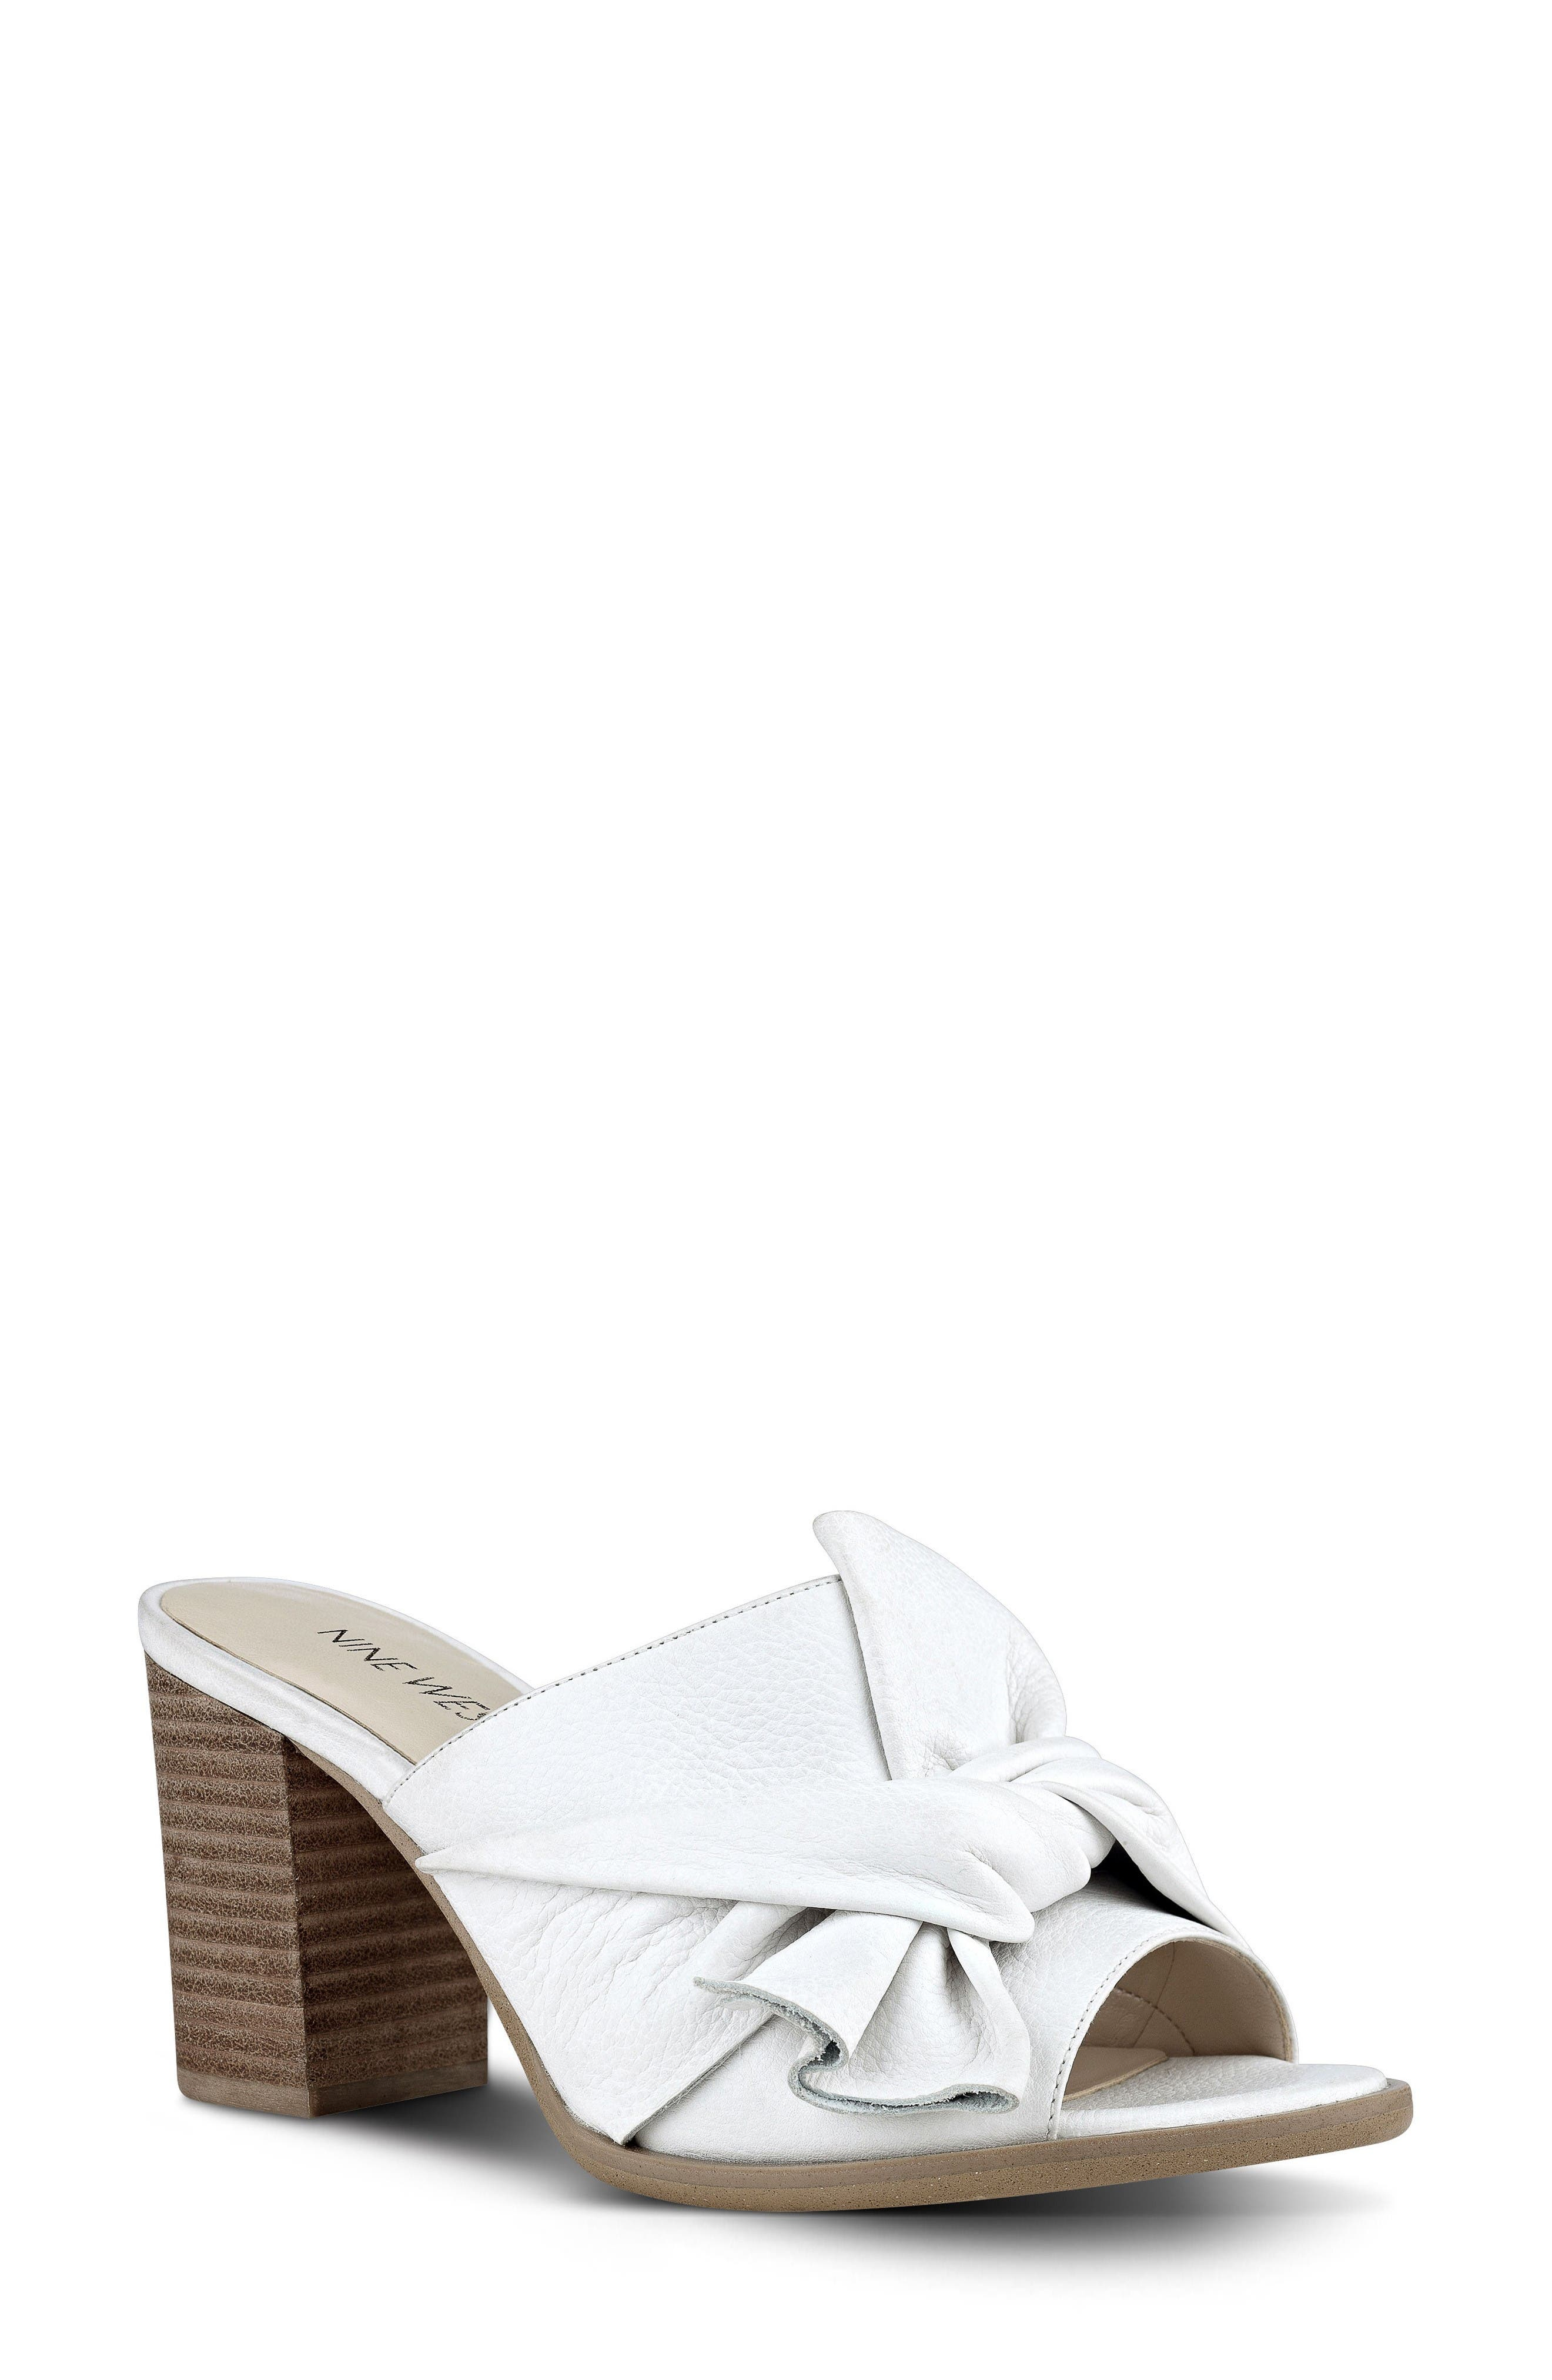 Byron Mule,                             Main thumbnail 1, color,                             White Leather